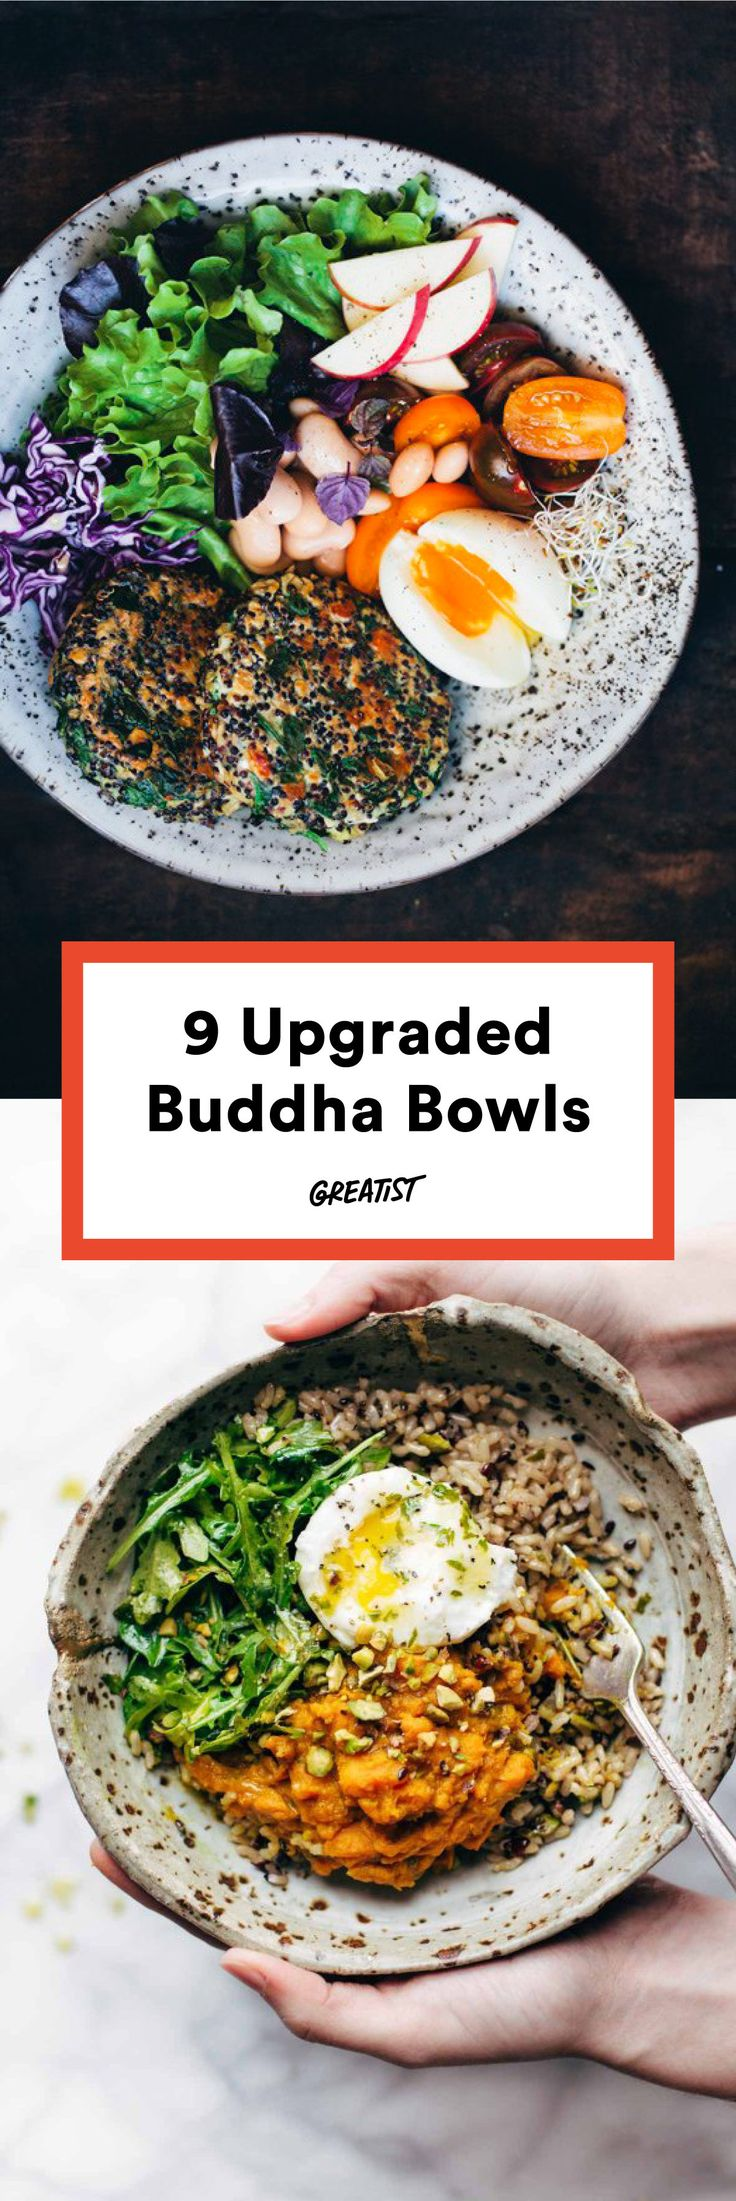 Buddha, Buddha, Buddha, Buddha, rockin' everywhere. #greatist http://greatist.com/eat/buddha-bowl-recipes